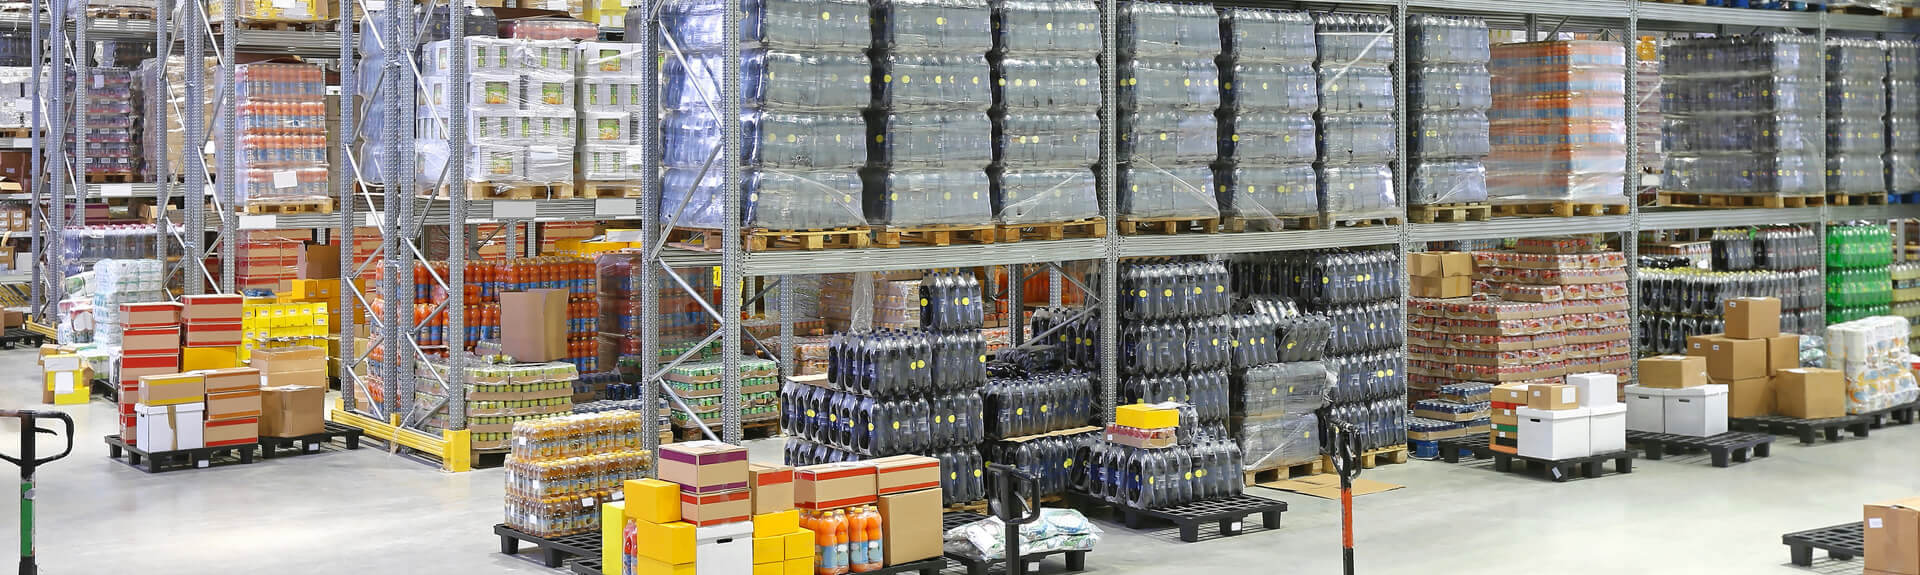 Keep Food Safety Standards at the Forefront with Food Grade Warehousing